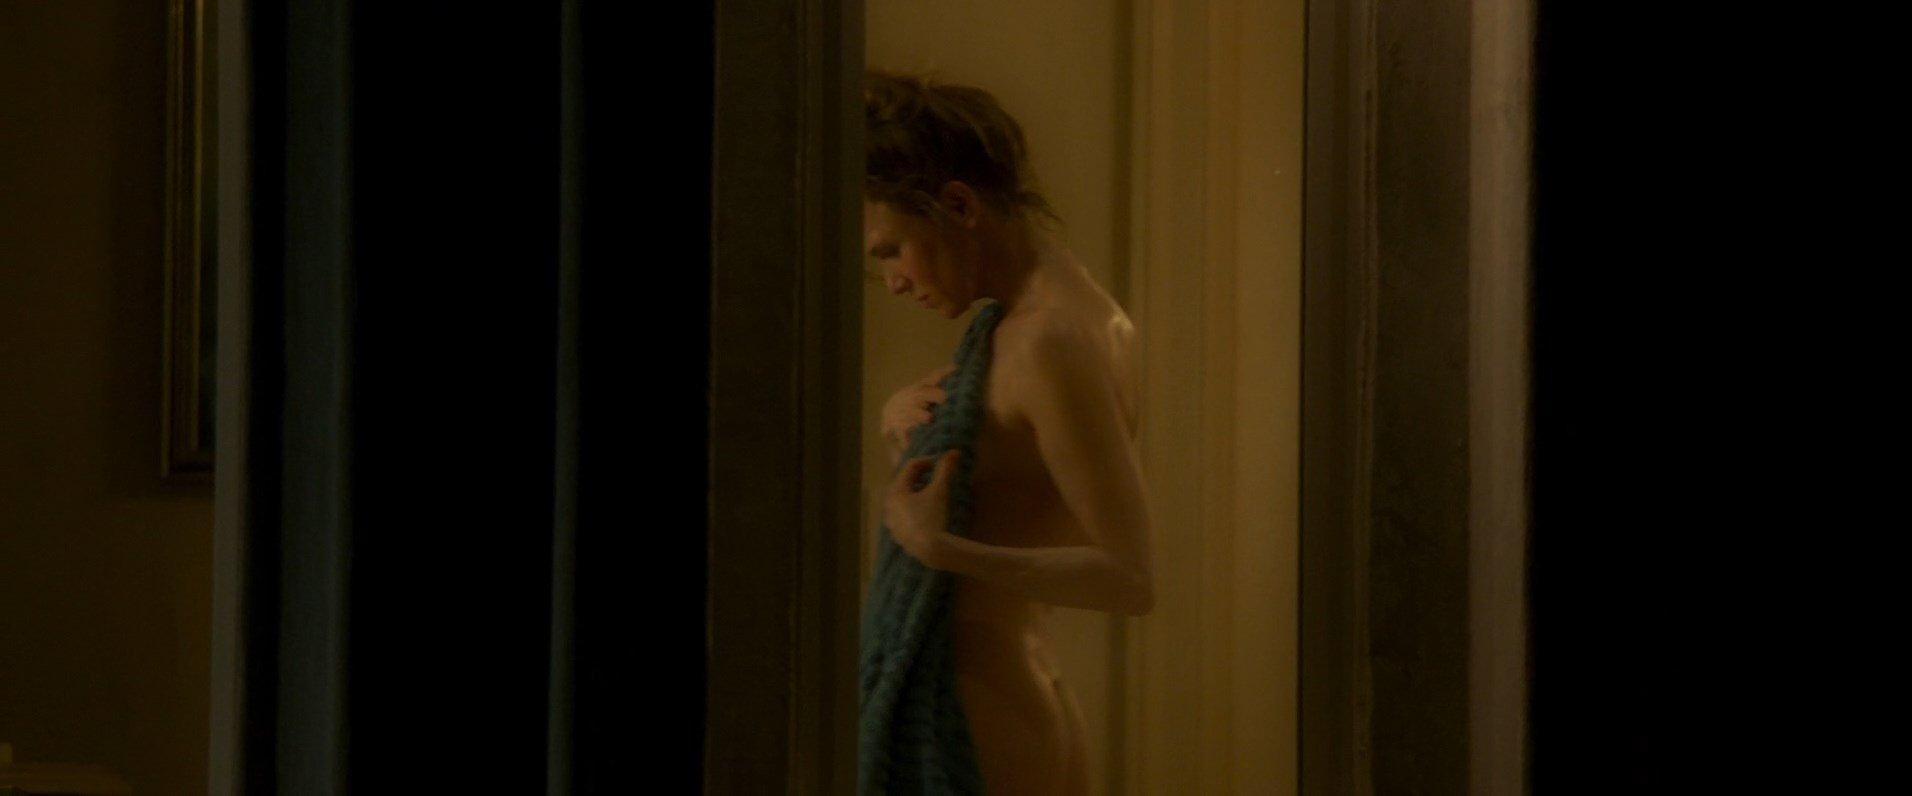 Rene Russo Breasts Scene in The Thomas Crown Affair - AZNude